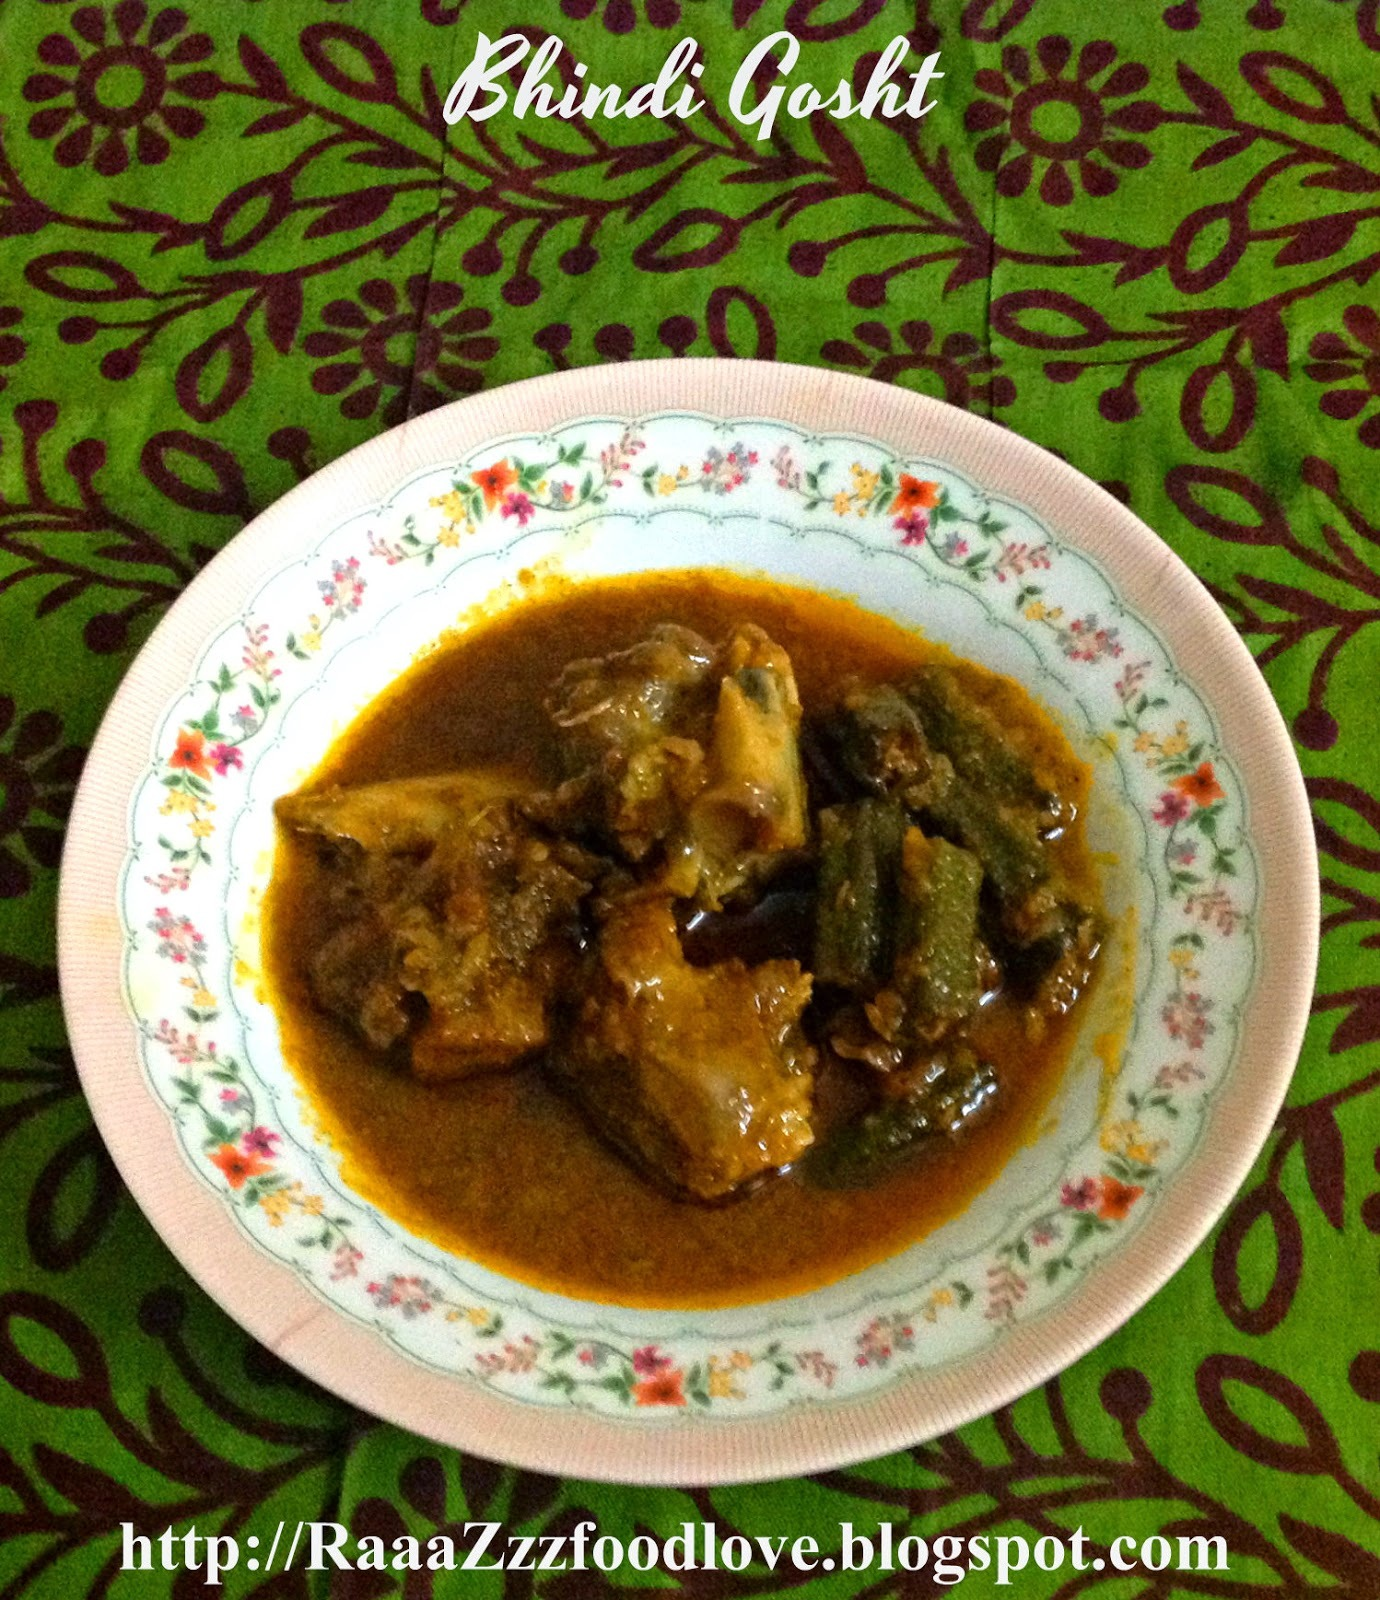 Bhindi Gosht - Okra and Mutton Curry